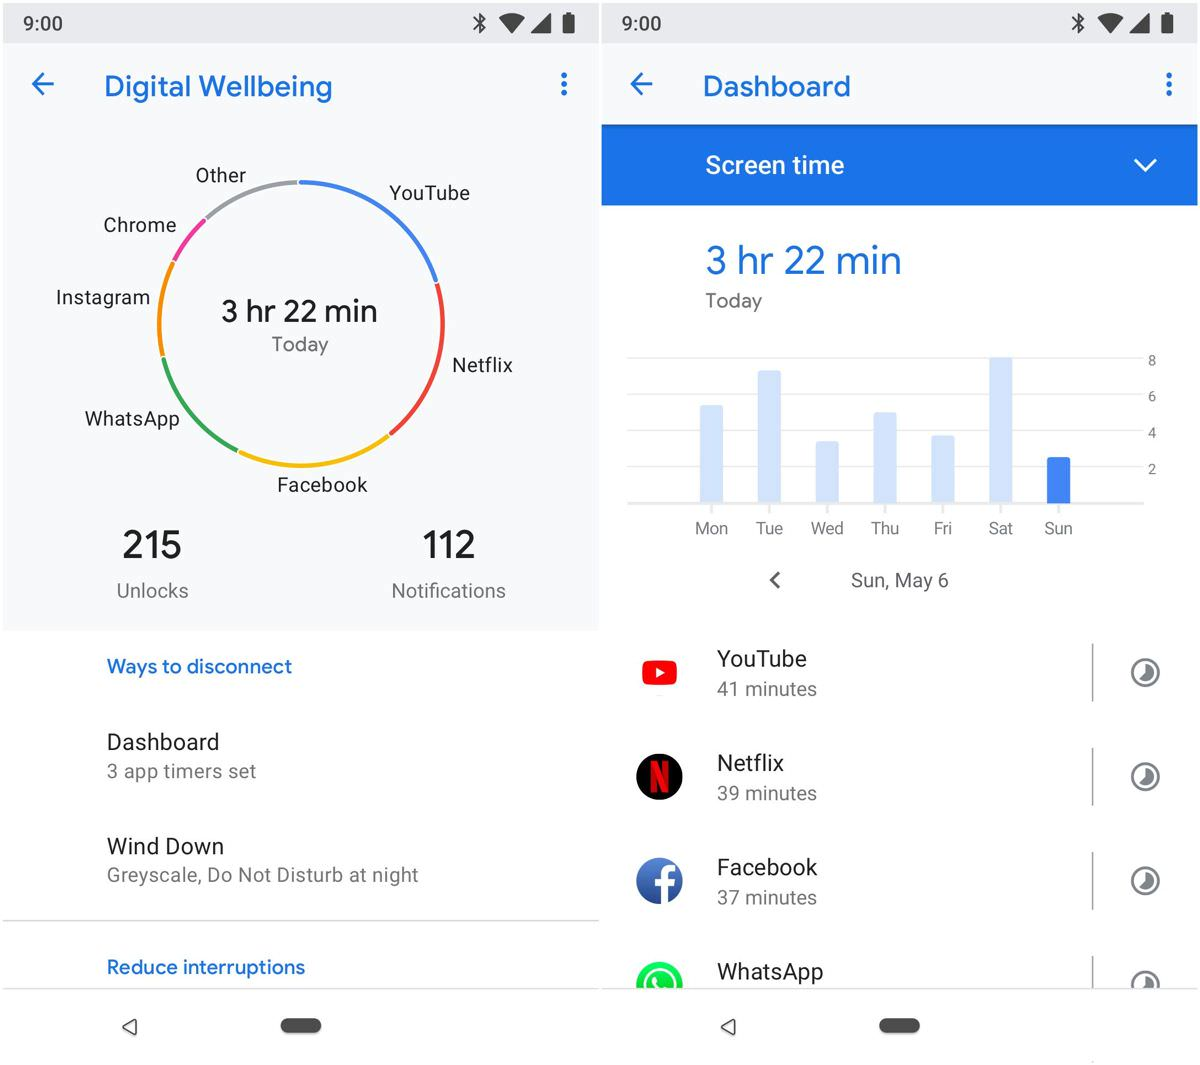 Google's Digital Wellbeing for Android